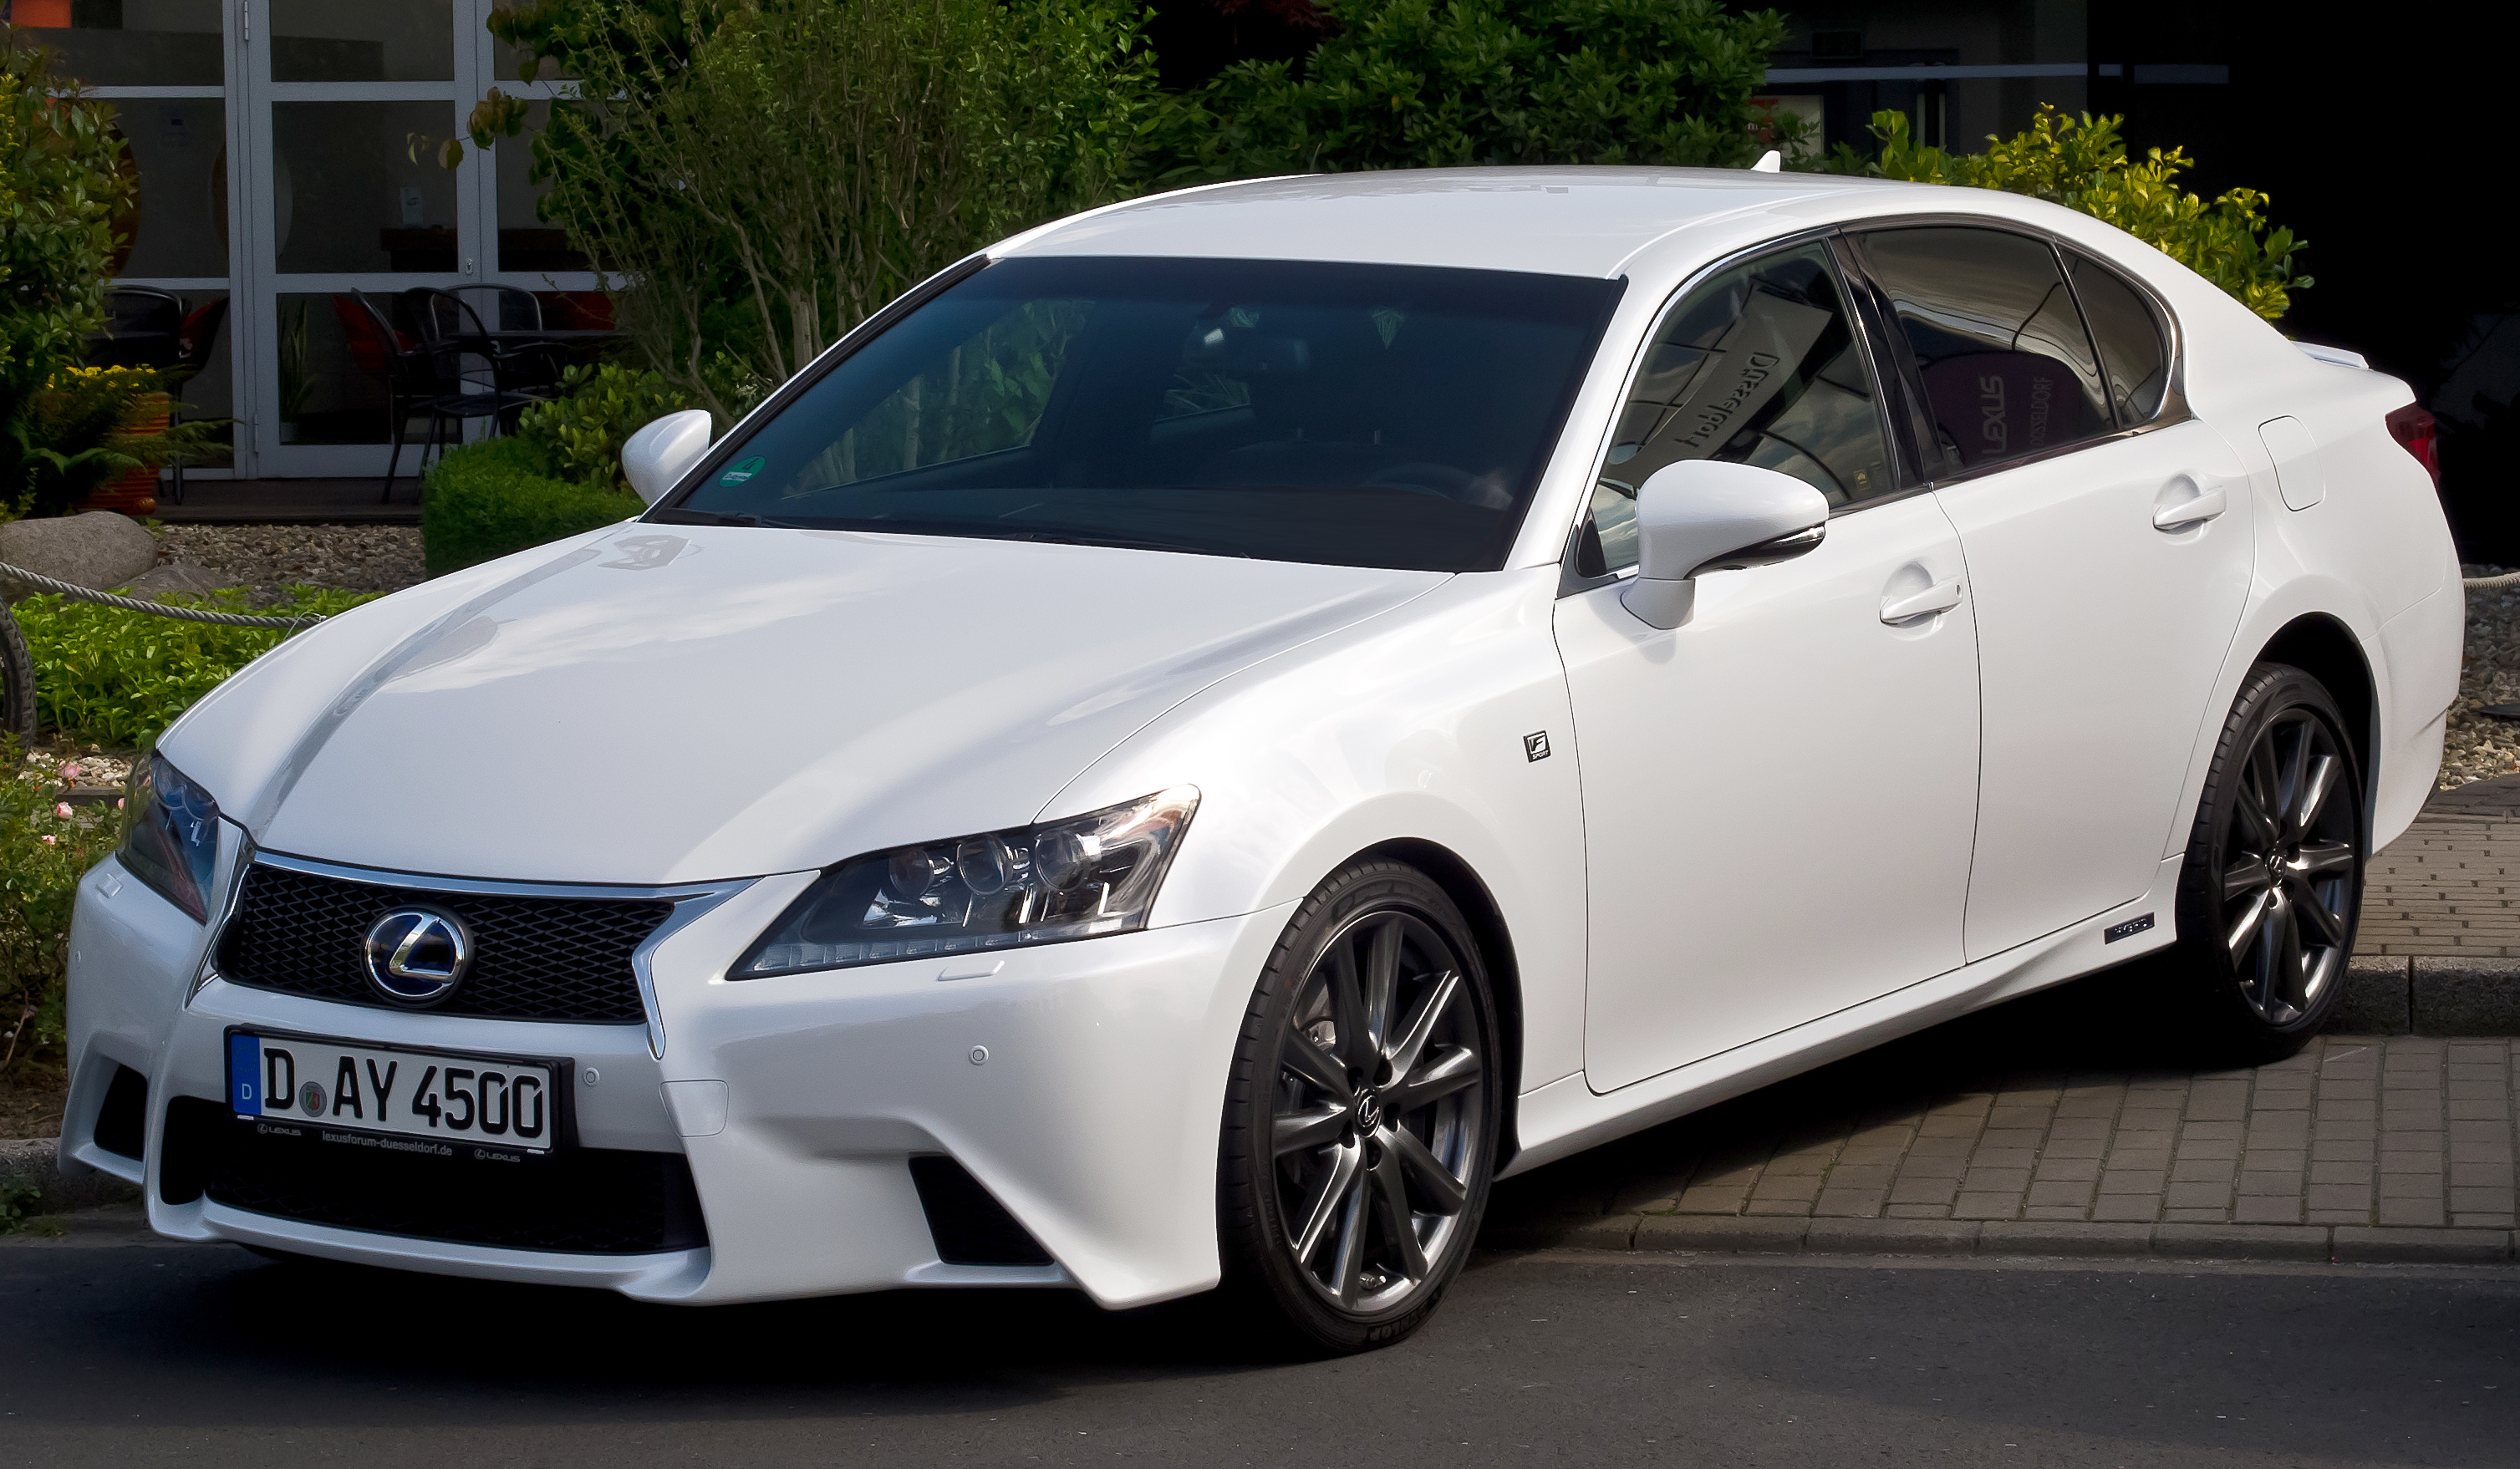 sport lexus forums bc to grill clublexus black sidhu front kiran match gs bumper gen for sale present